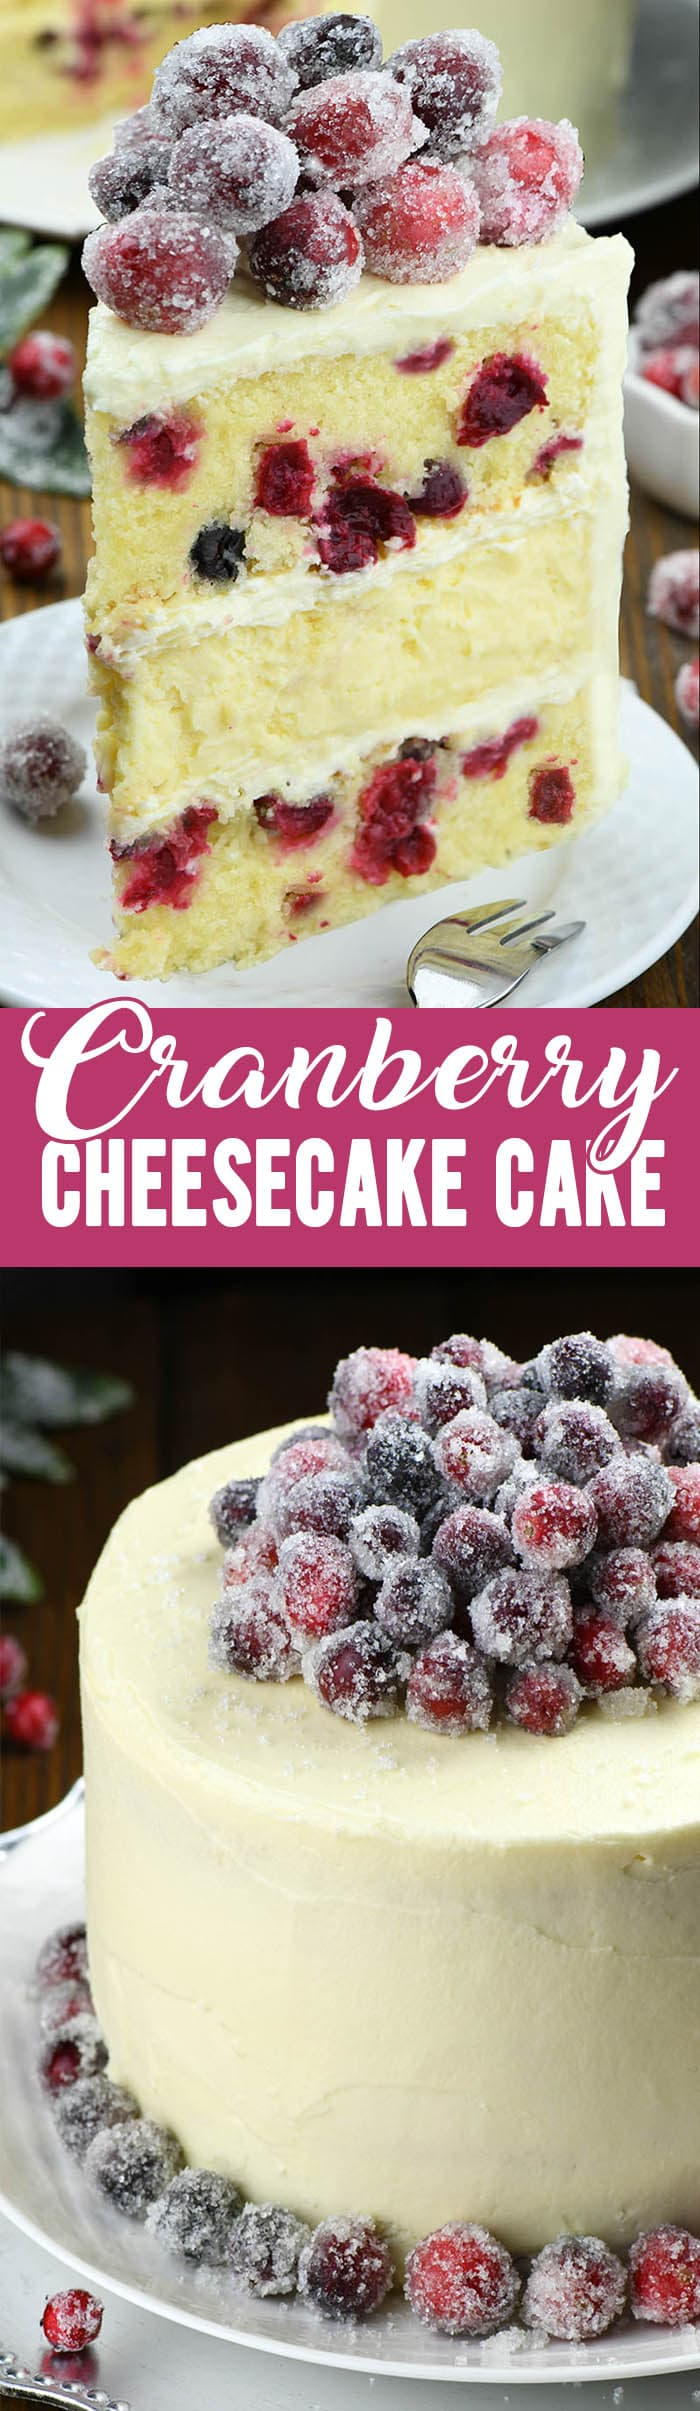 White Chocolate Cranberry Cheesecake. This cake deserves a central place on your Thanksgiving or Christmas table! Layers of moist vanilla cake made with fresh cranberries, creamy decadence of white chocolate cheesecake, with sparkling cranberries will outshine every other dessert on the table!#christmascake #cranberrycake #cheesecakerecipes #cakerecipes